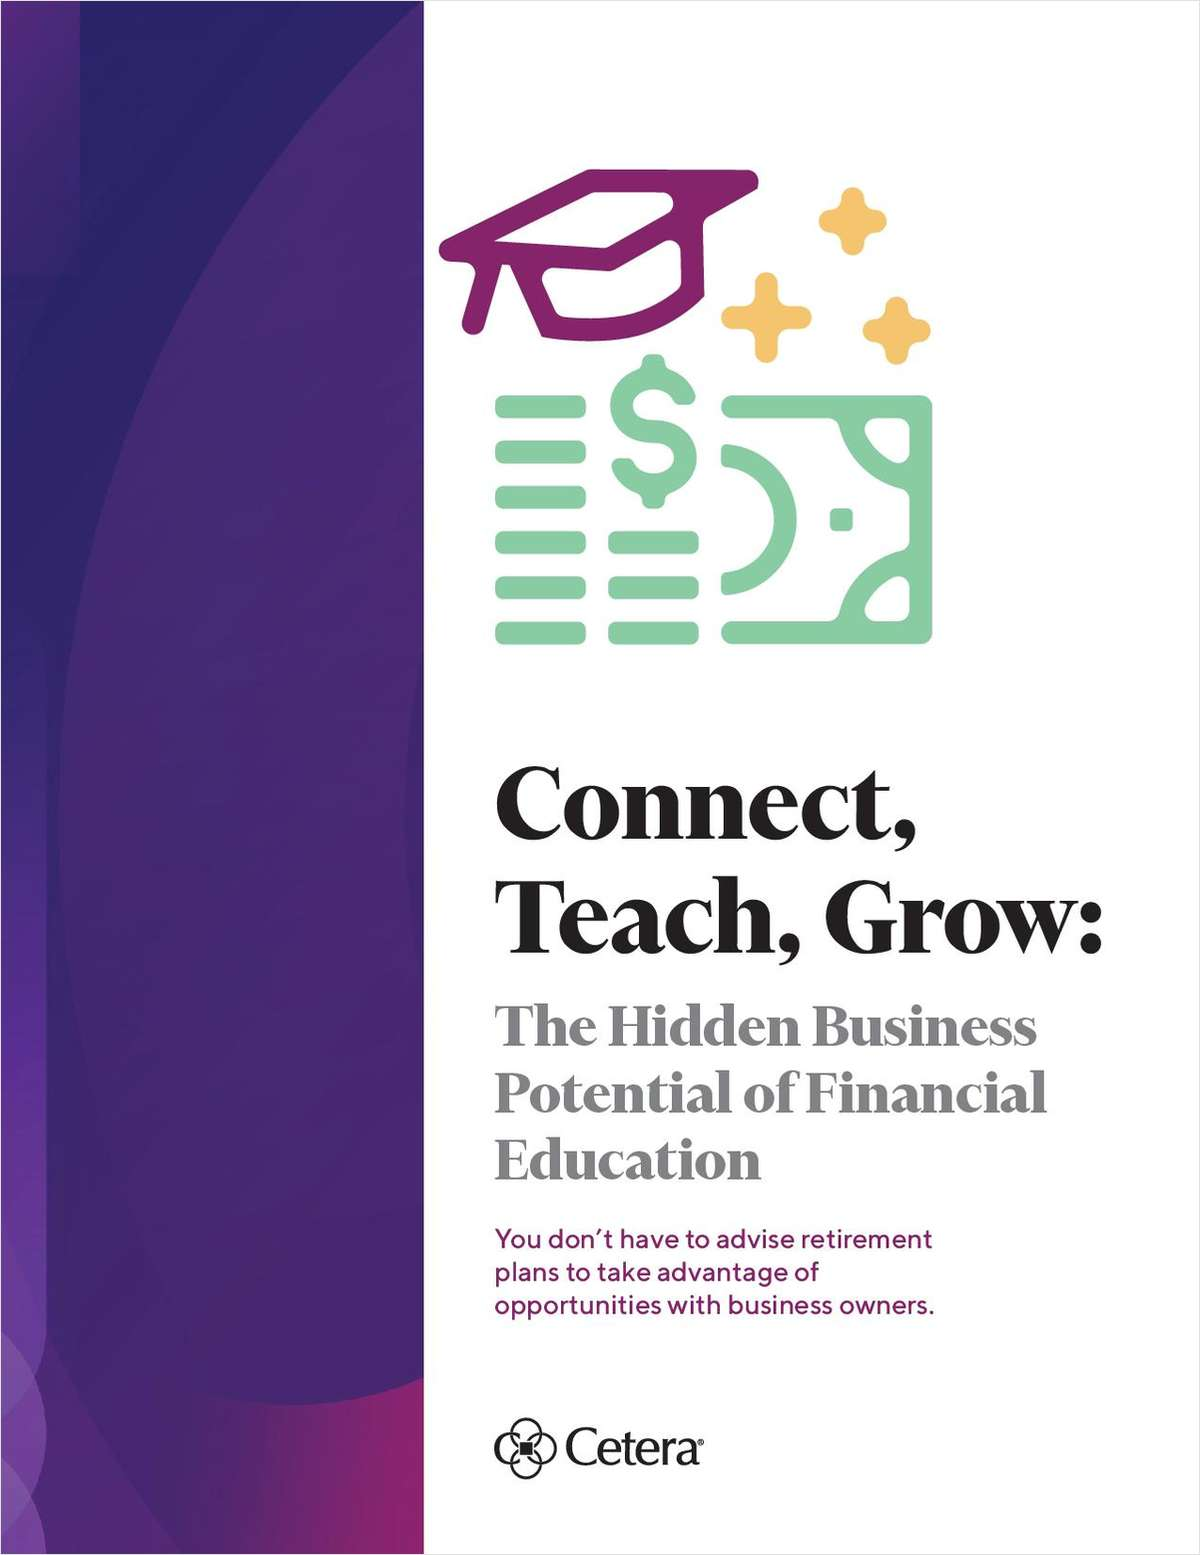 Connect, Teach, Grow: The Hidden Business Potential of Financial Education